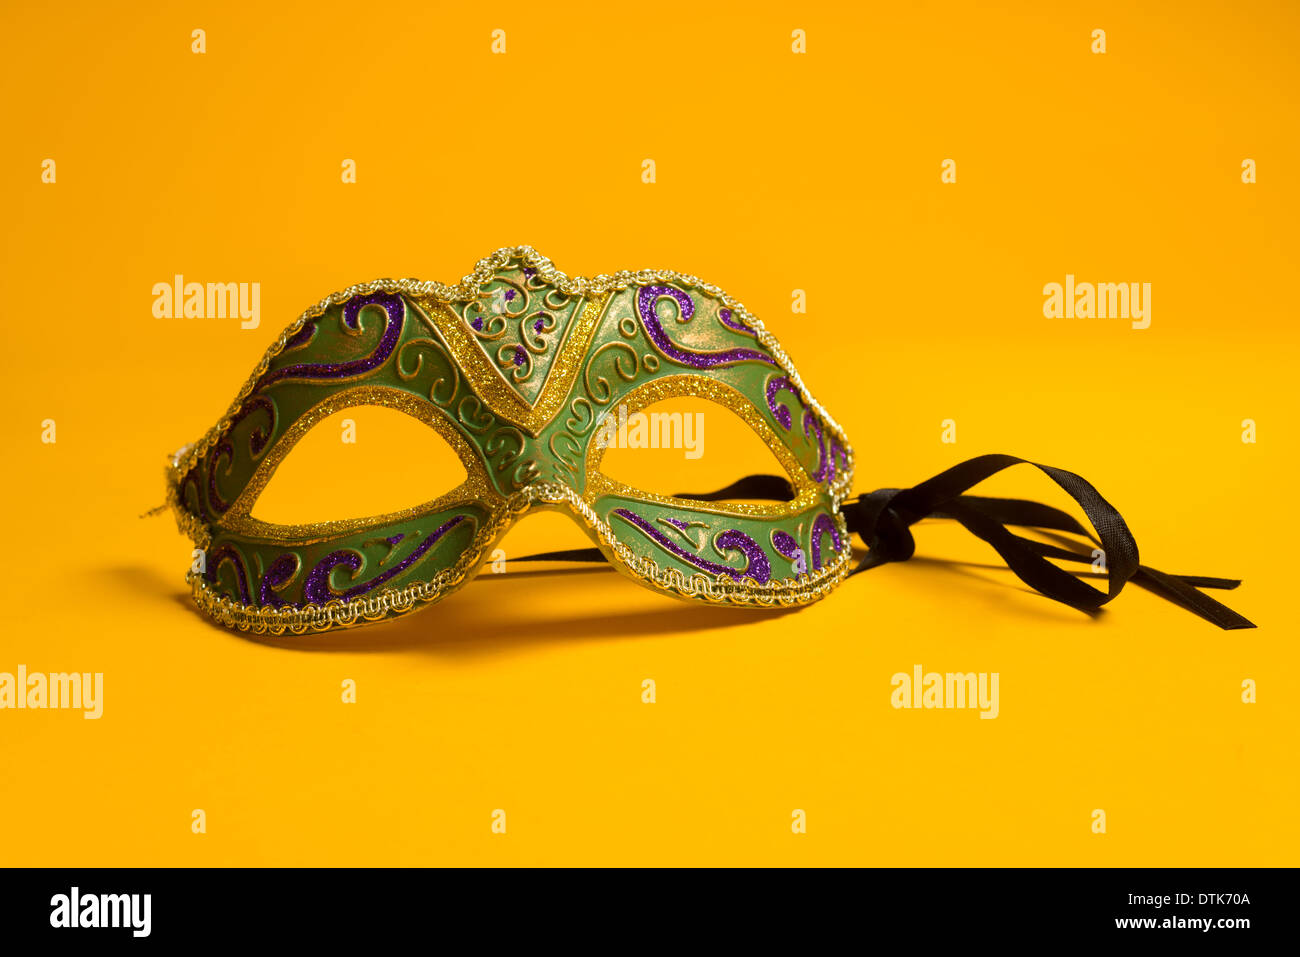 Ornamental Mask Stock Photos & Ornamental Mask Stock Images - Alamy